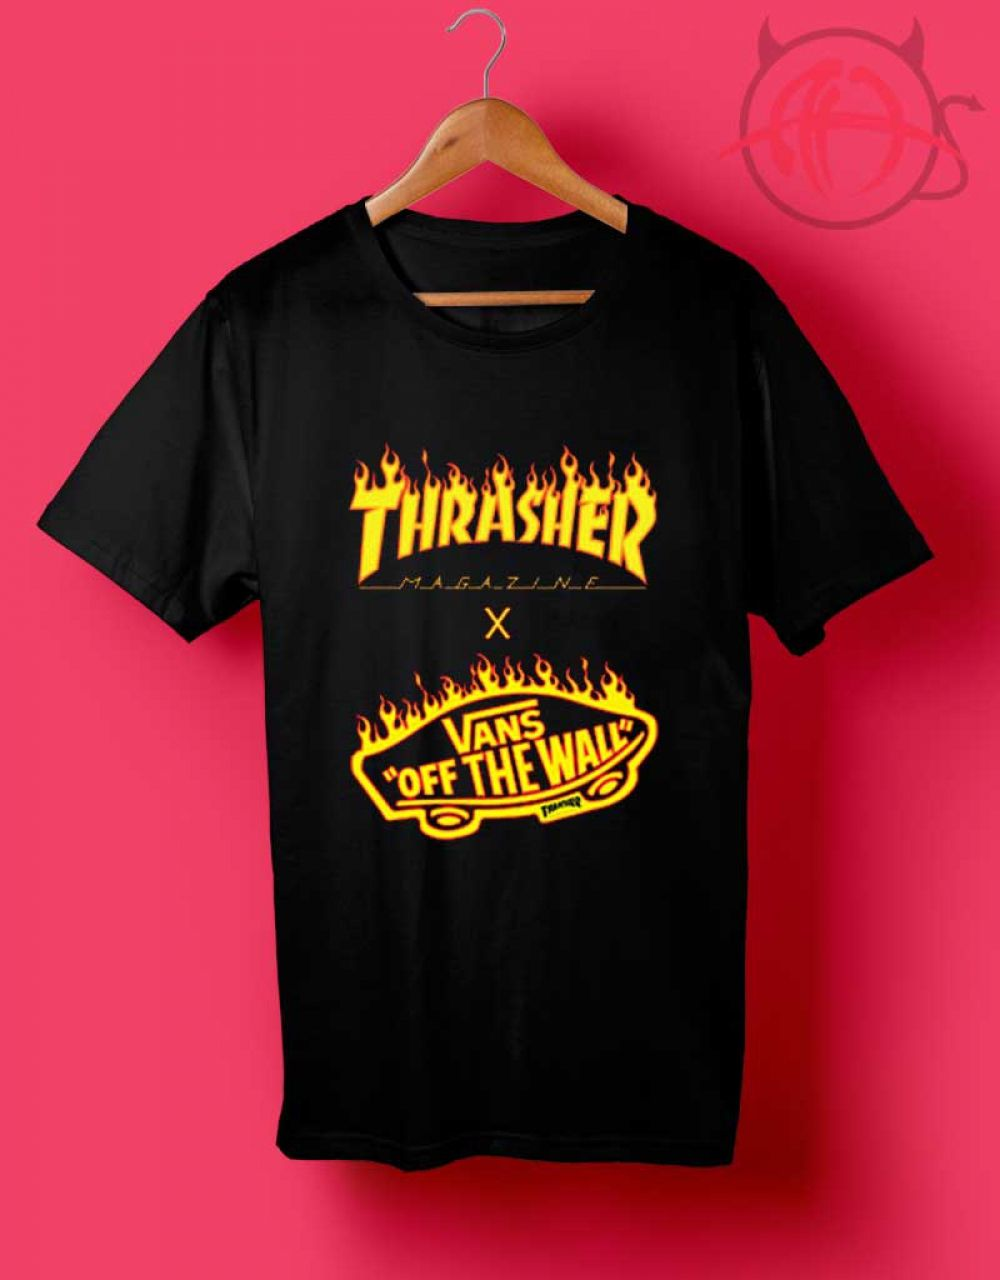 d9424726 Vans x Thrasher 2017 Collaboration T Shirt $ 14.50 #Tee #Hype #Outfits  #Outfit #Hypebeast #fashion #shirt #Tees #Tops #Teen